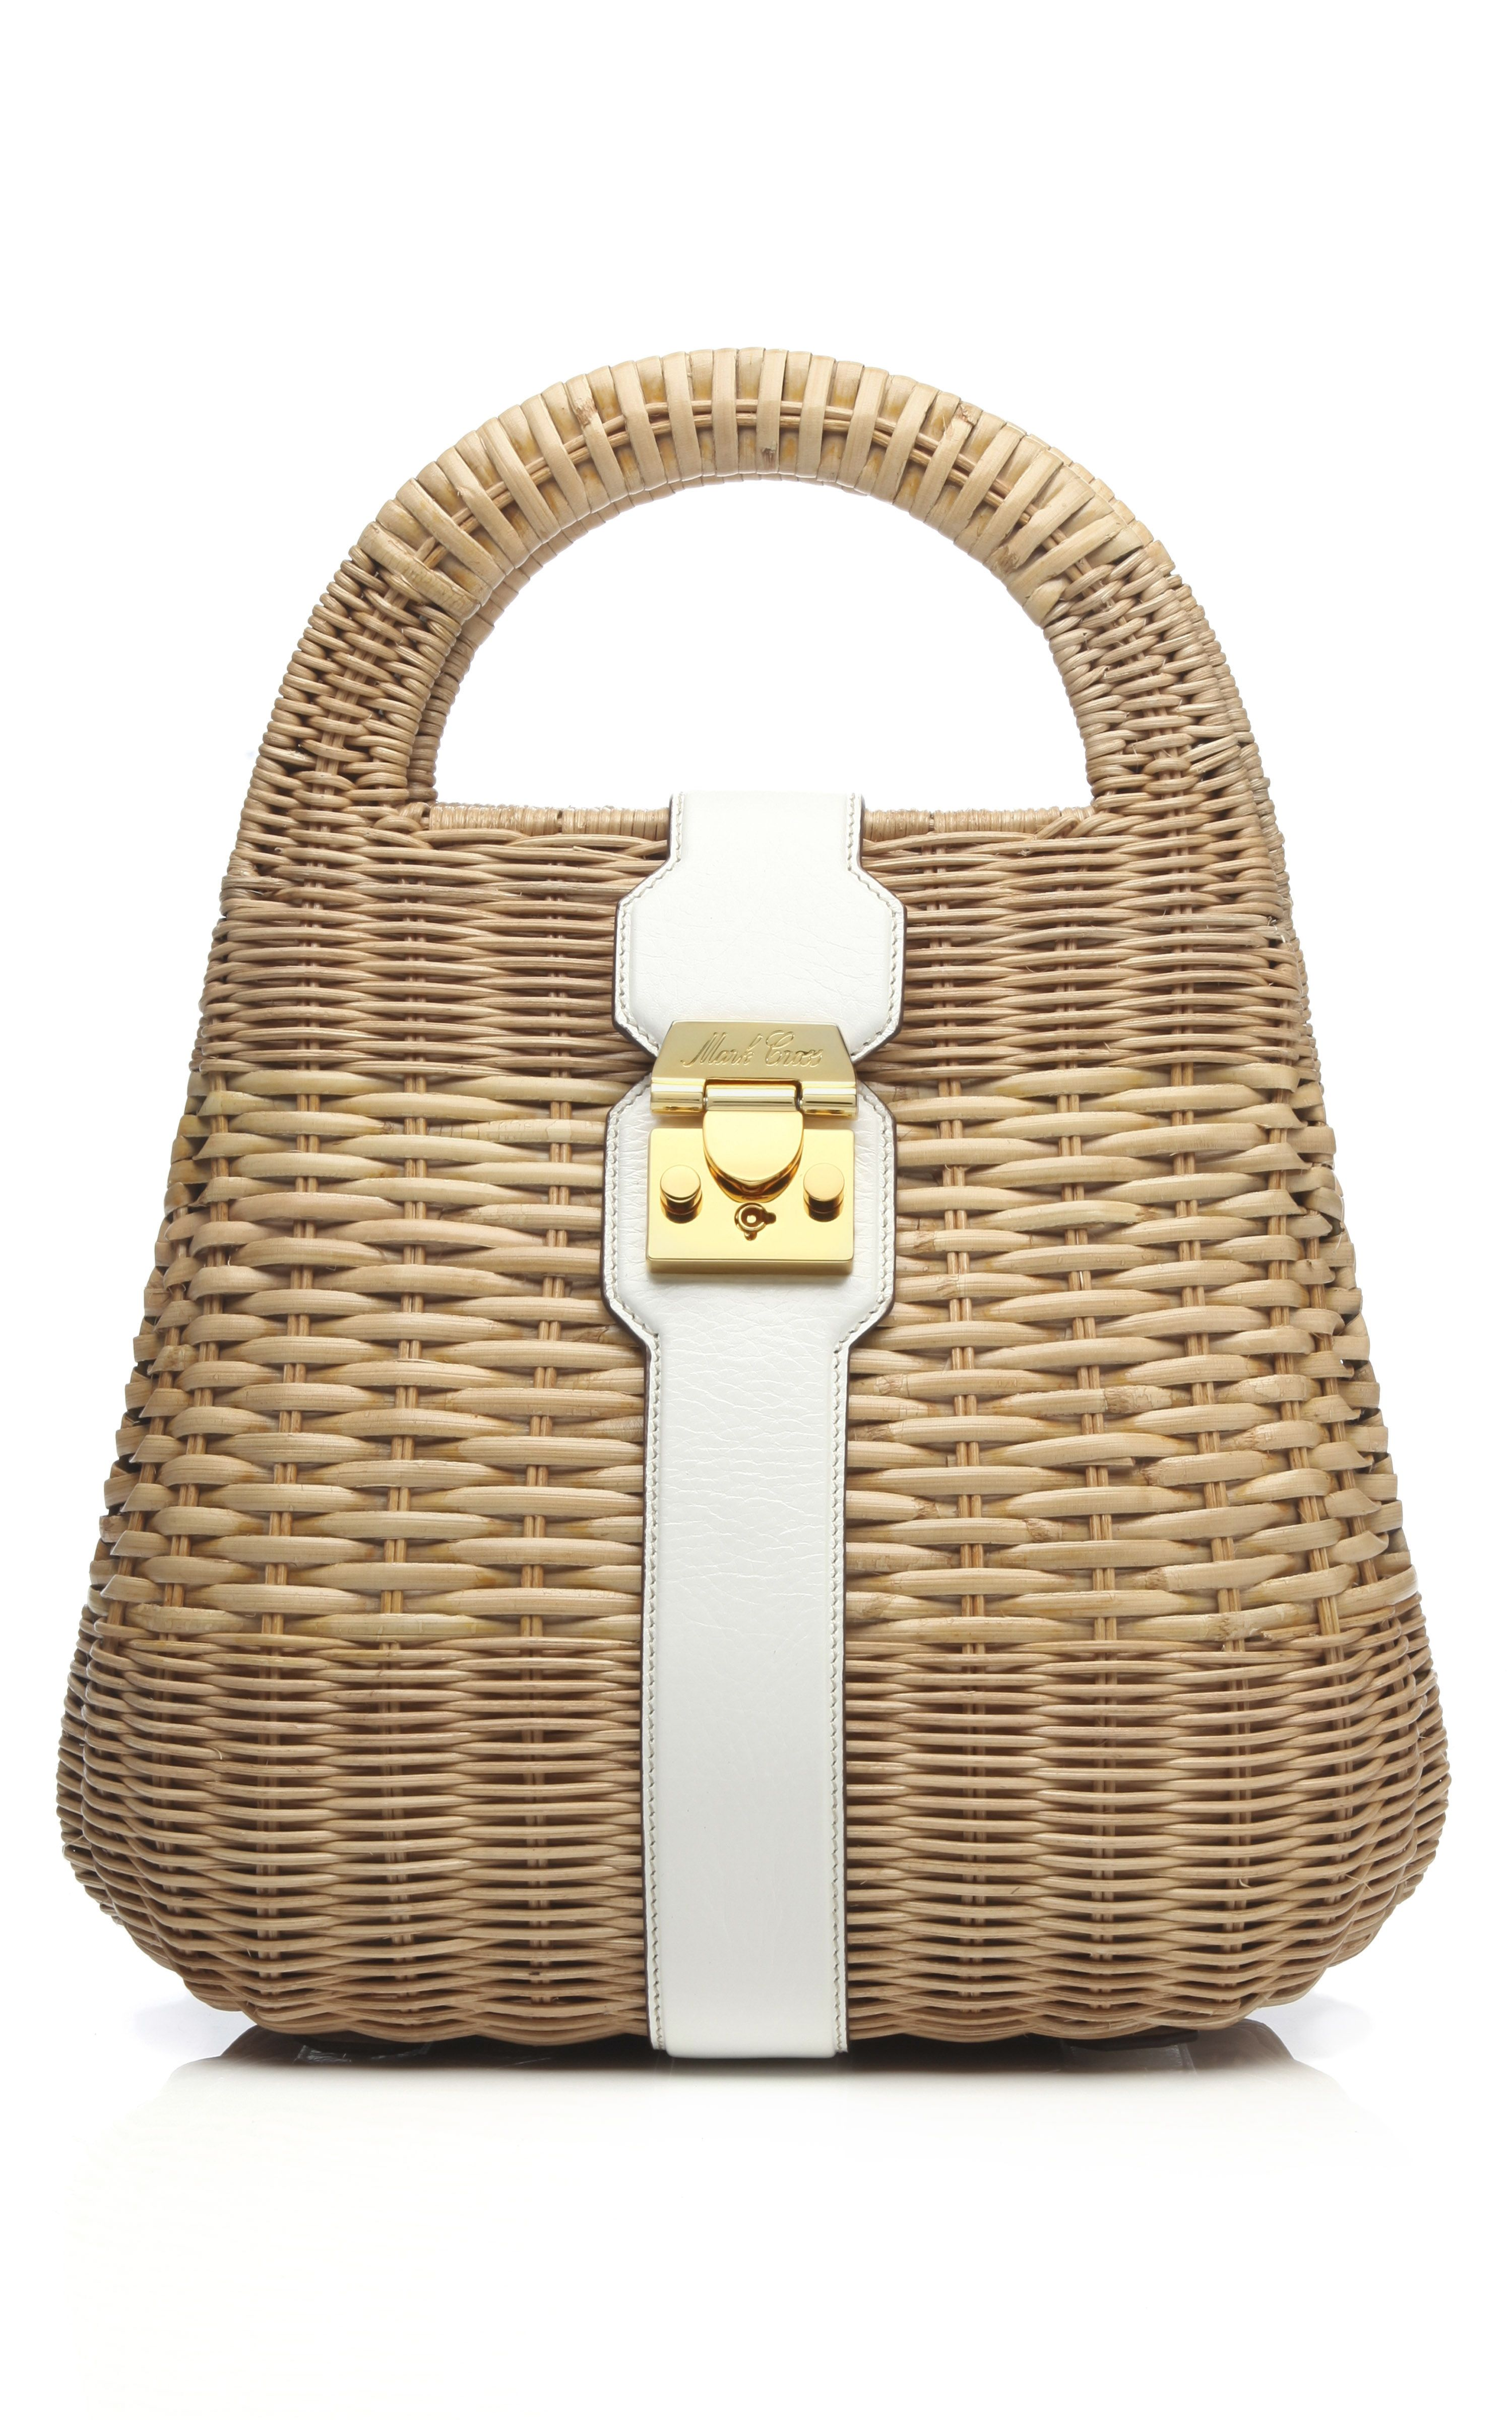 b6415bb3e Mark Cross Manray Rattan Small Satchel in White at Moda Operandi Bolsas,  Colores Blancos,